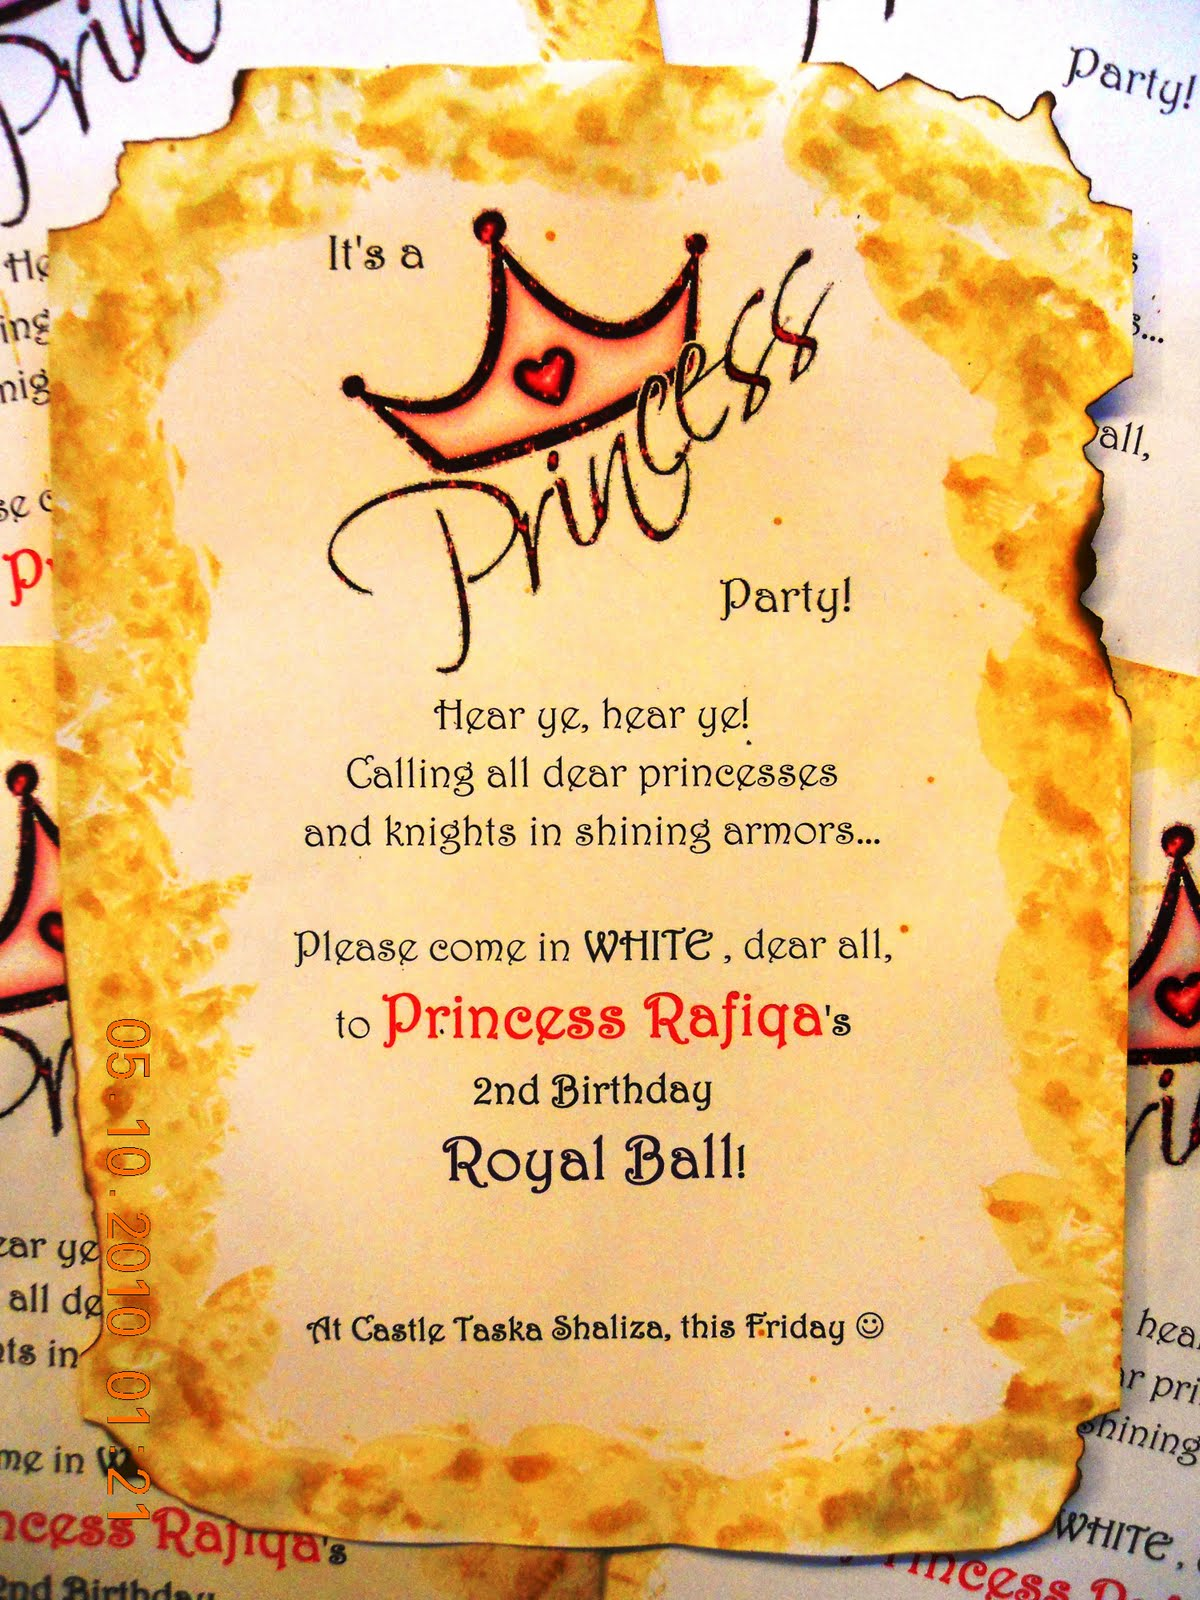 Kids fun party princess rafiqas 2nd birthday royal ball invitation antique look was done by dabbing wet tea bags stopboris Image collections